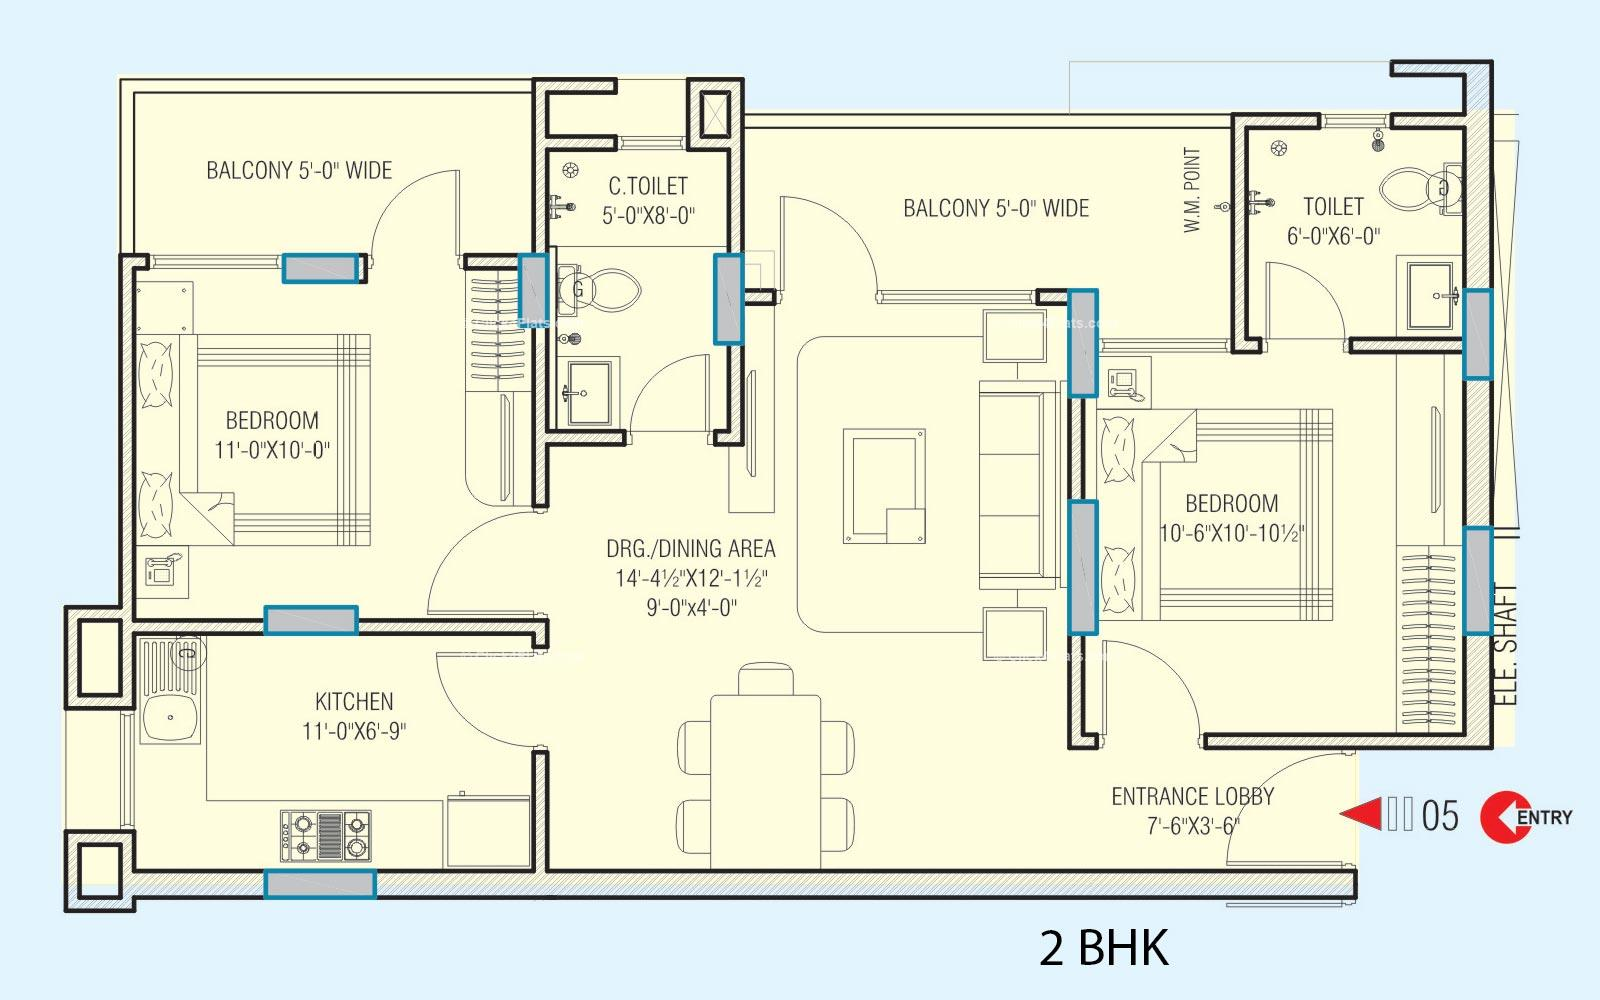 Platinum Heights 2 BHK